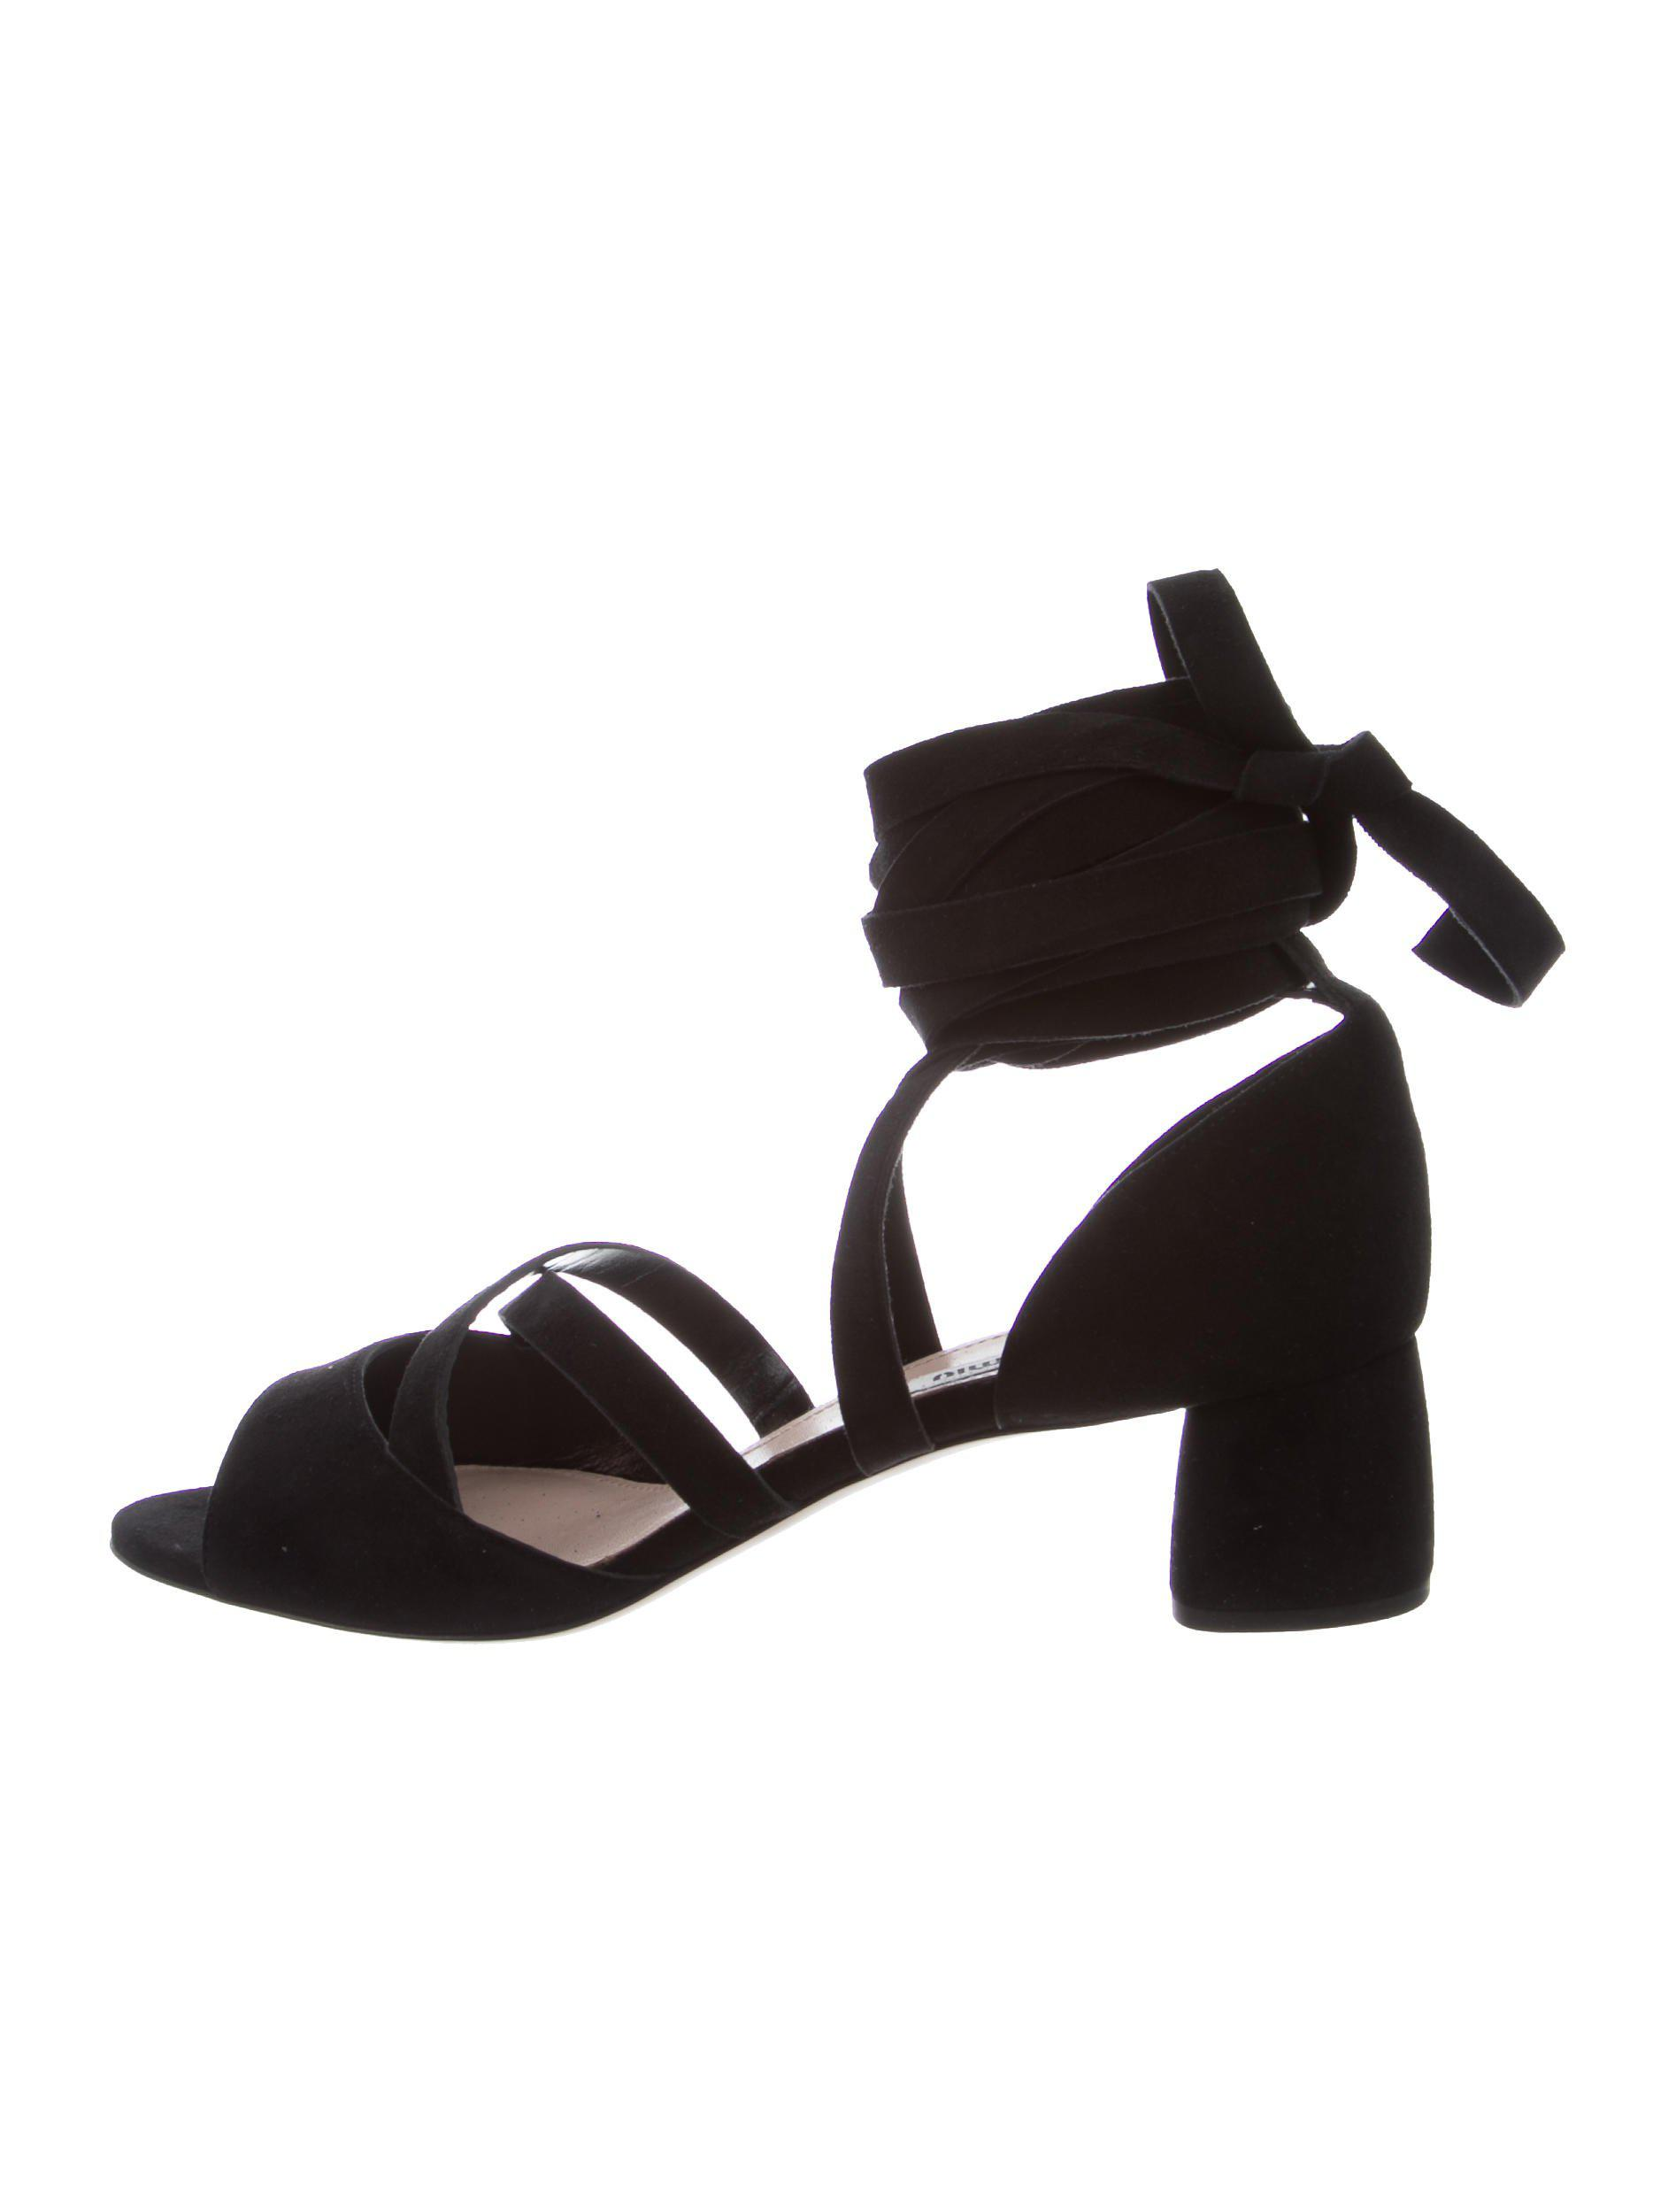 buy cheap prices popular cheap price Miu Miu Leather Lace-Up Sandals w/ Tags cheap release dates LHElI0uluz